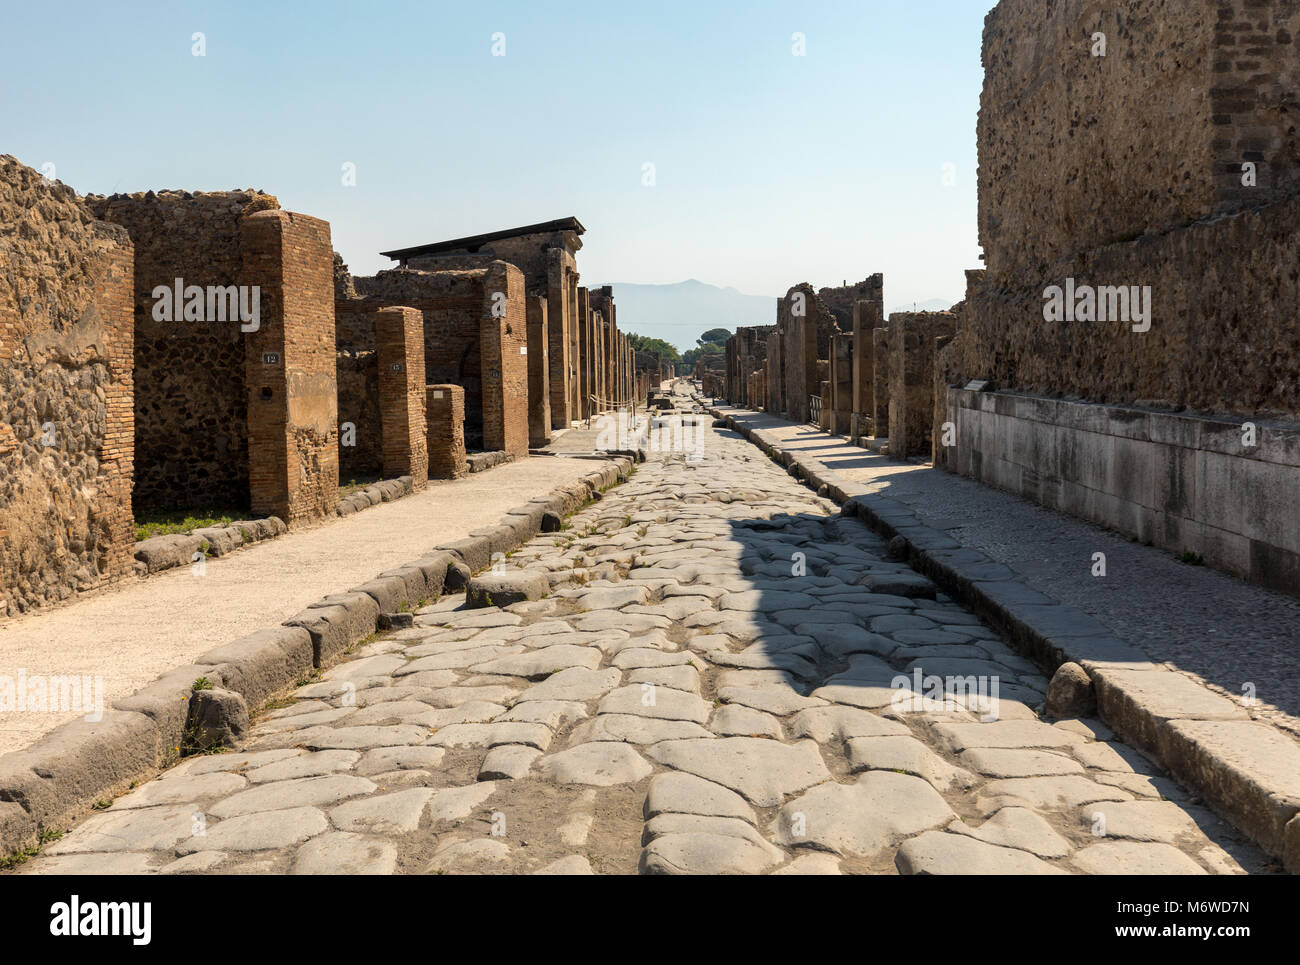 An ancient cobbled street in the ruins of Pompeii, Italy. - Stock Image